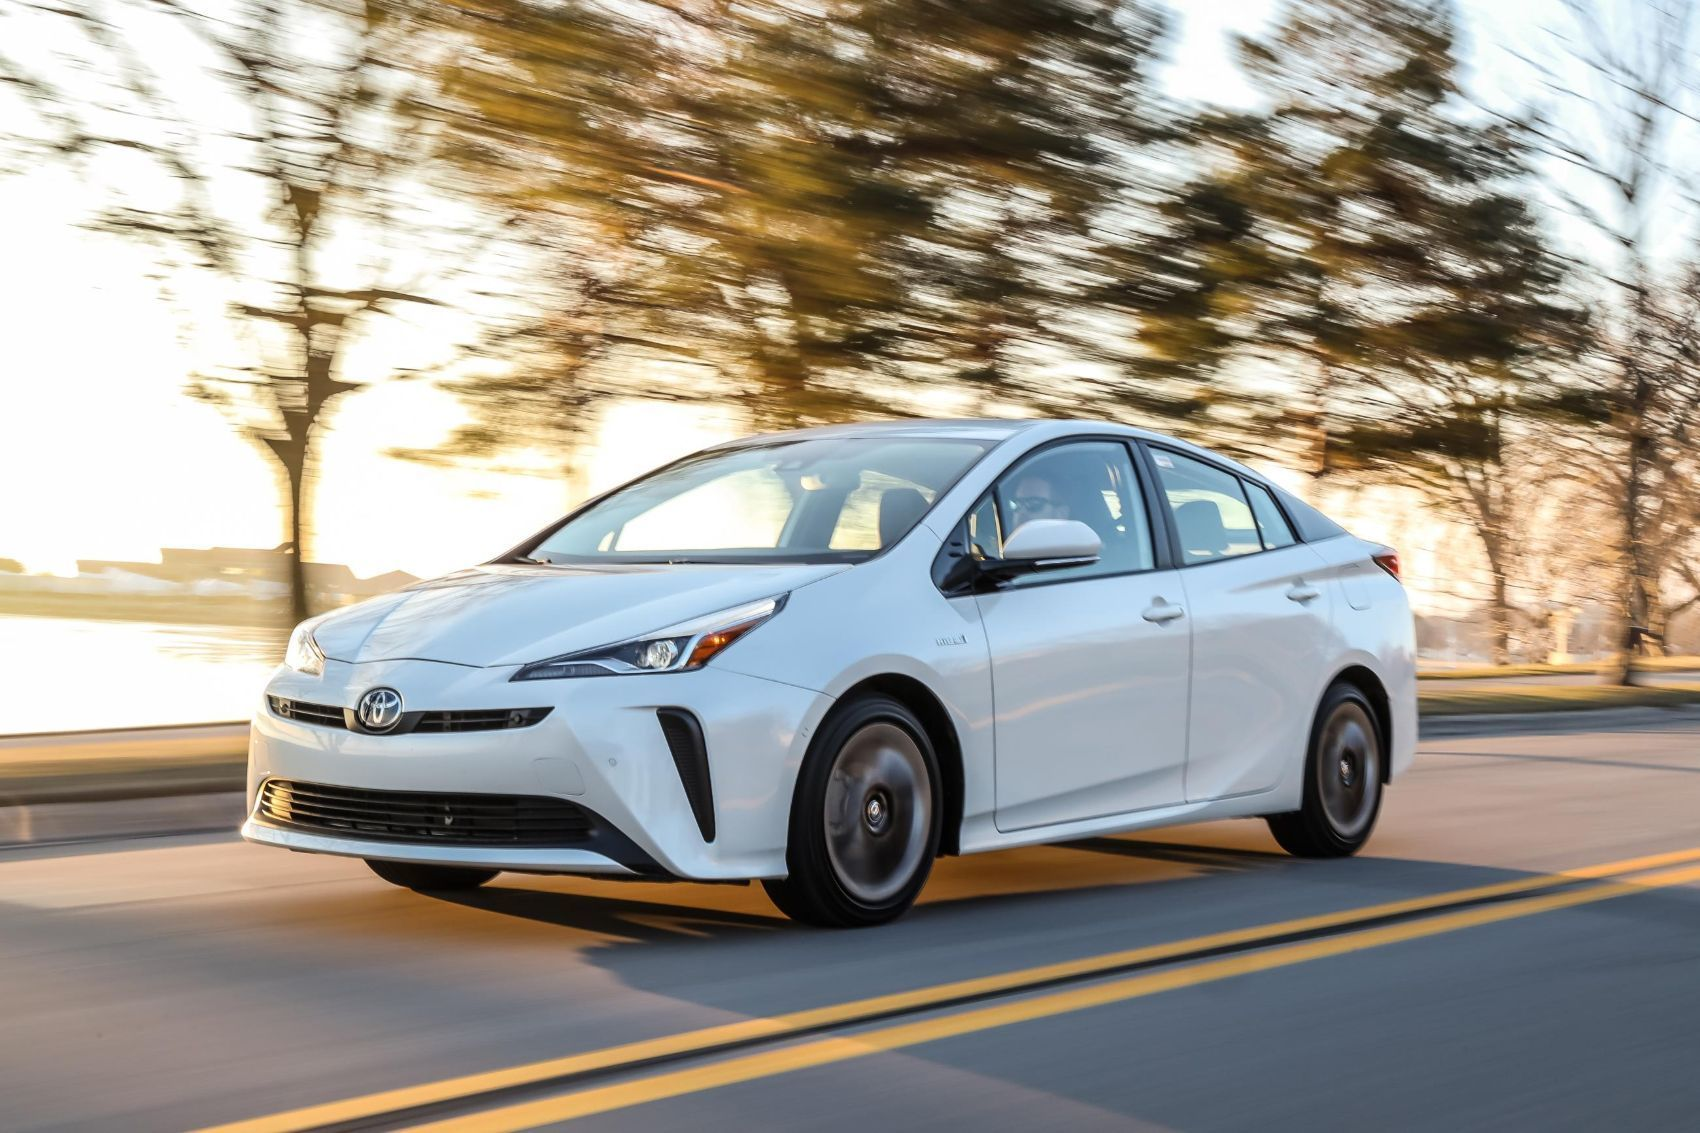 2020 Toyota Prius Still Efficient After All These Years